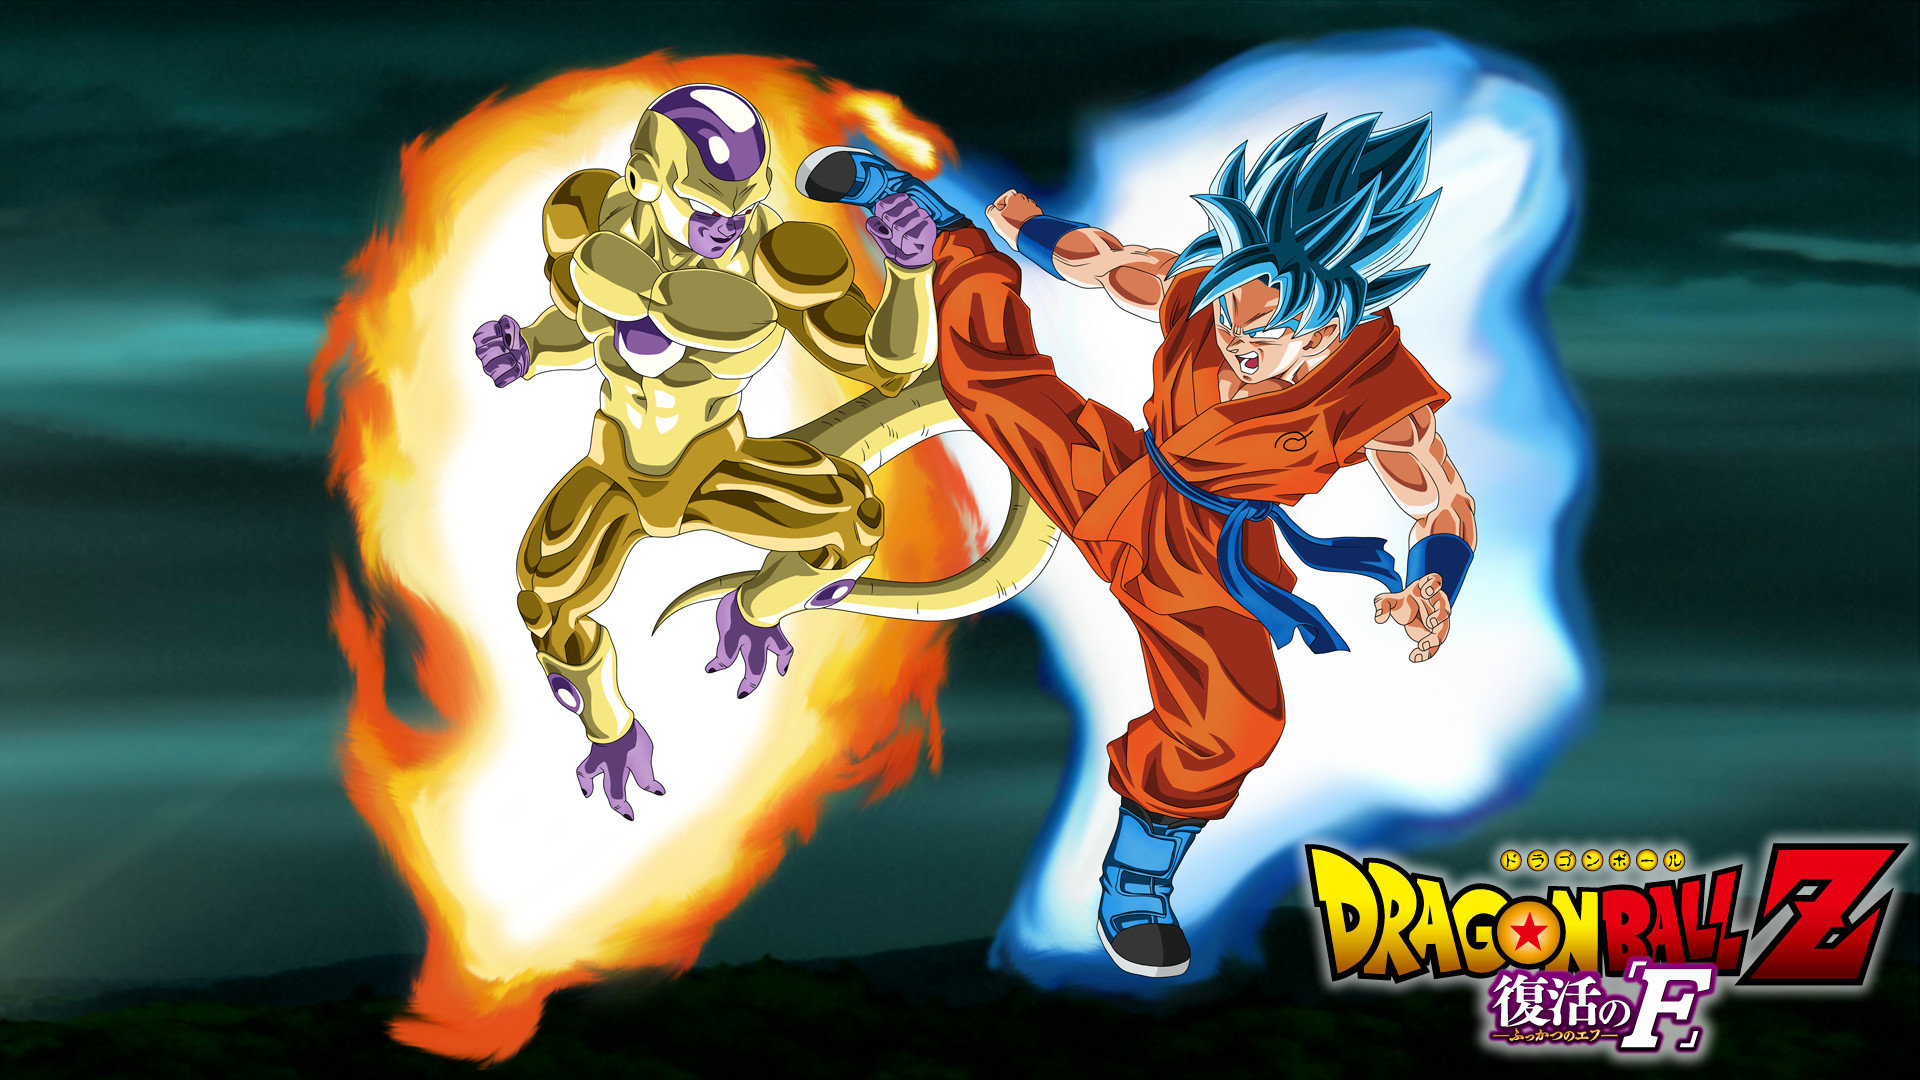 High resolution Dragon Ball Z: Resurrection Of F 1080p wallpaper ID:391560 for desktop